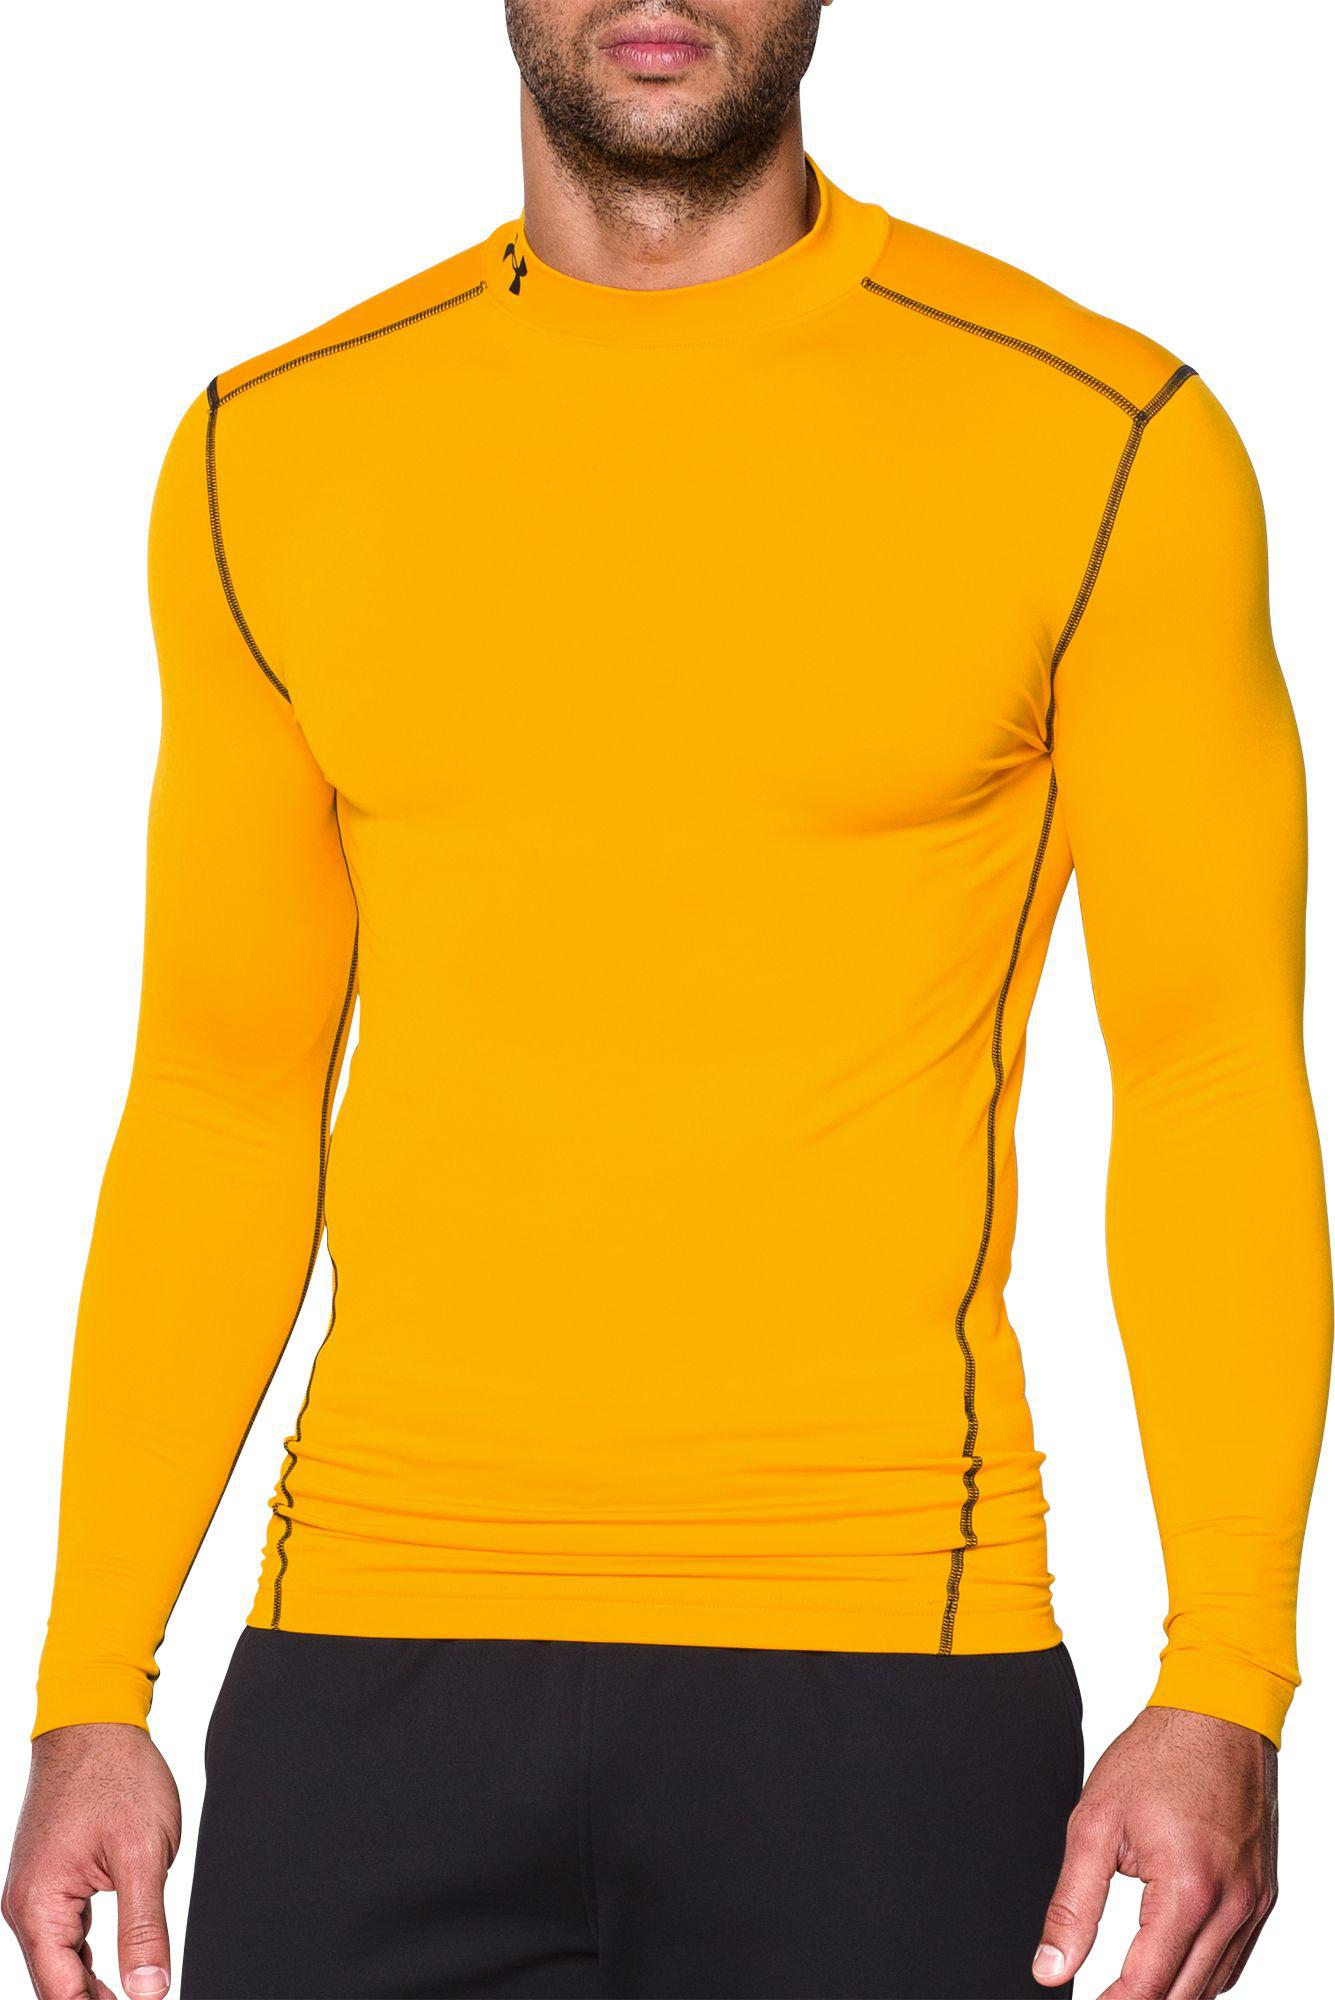 7e88535b0 Under Armour - Black Coldgear Armour Compression Mock Neck Long Sleeve Shirt  for Men - Lyst